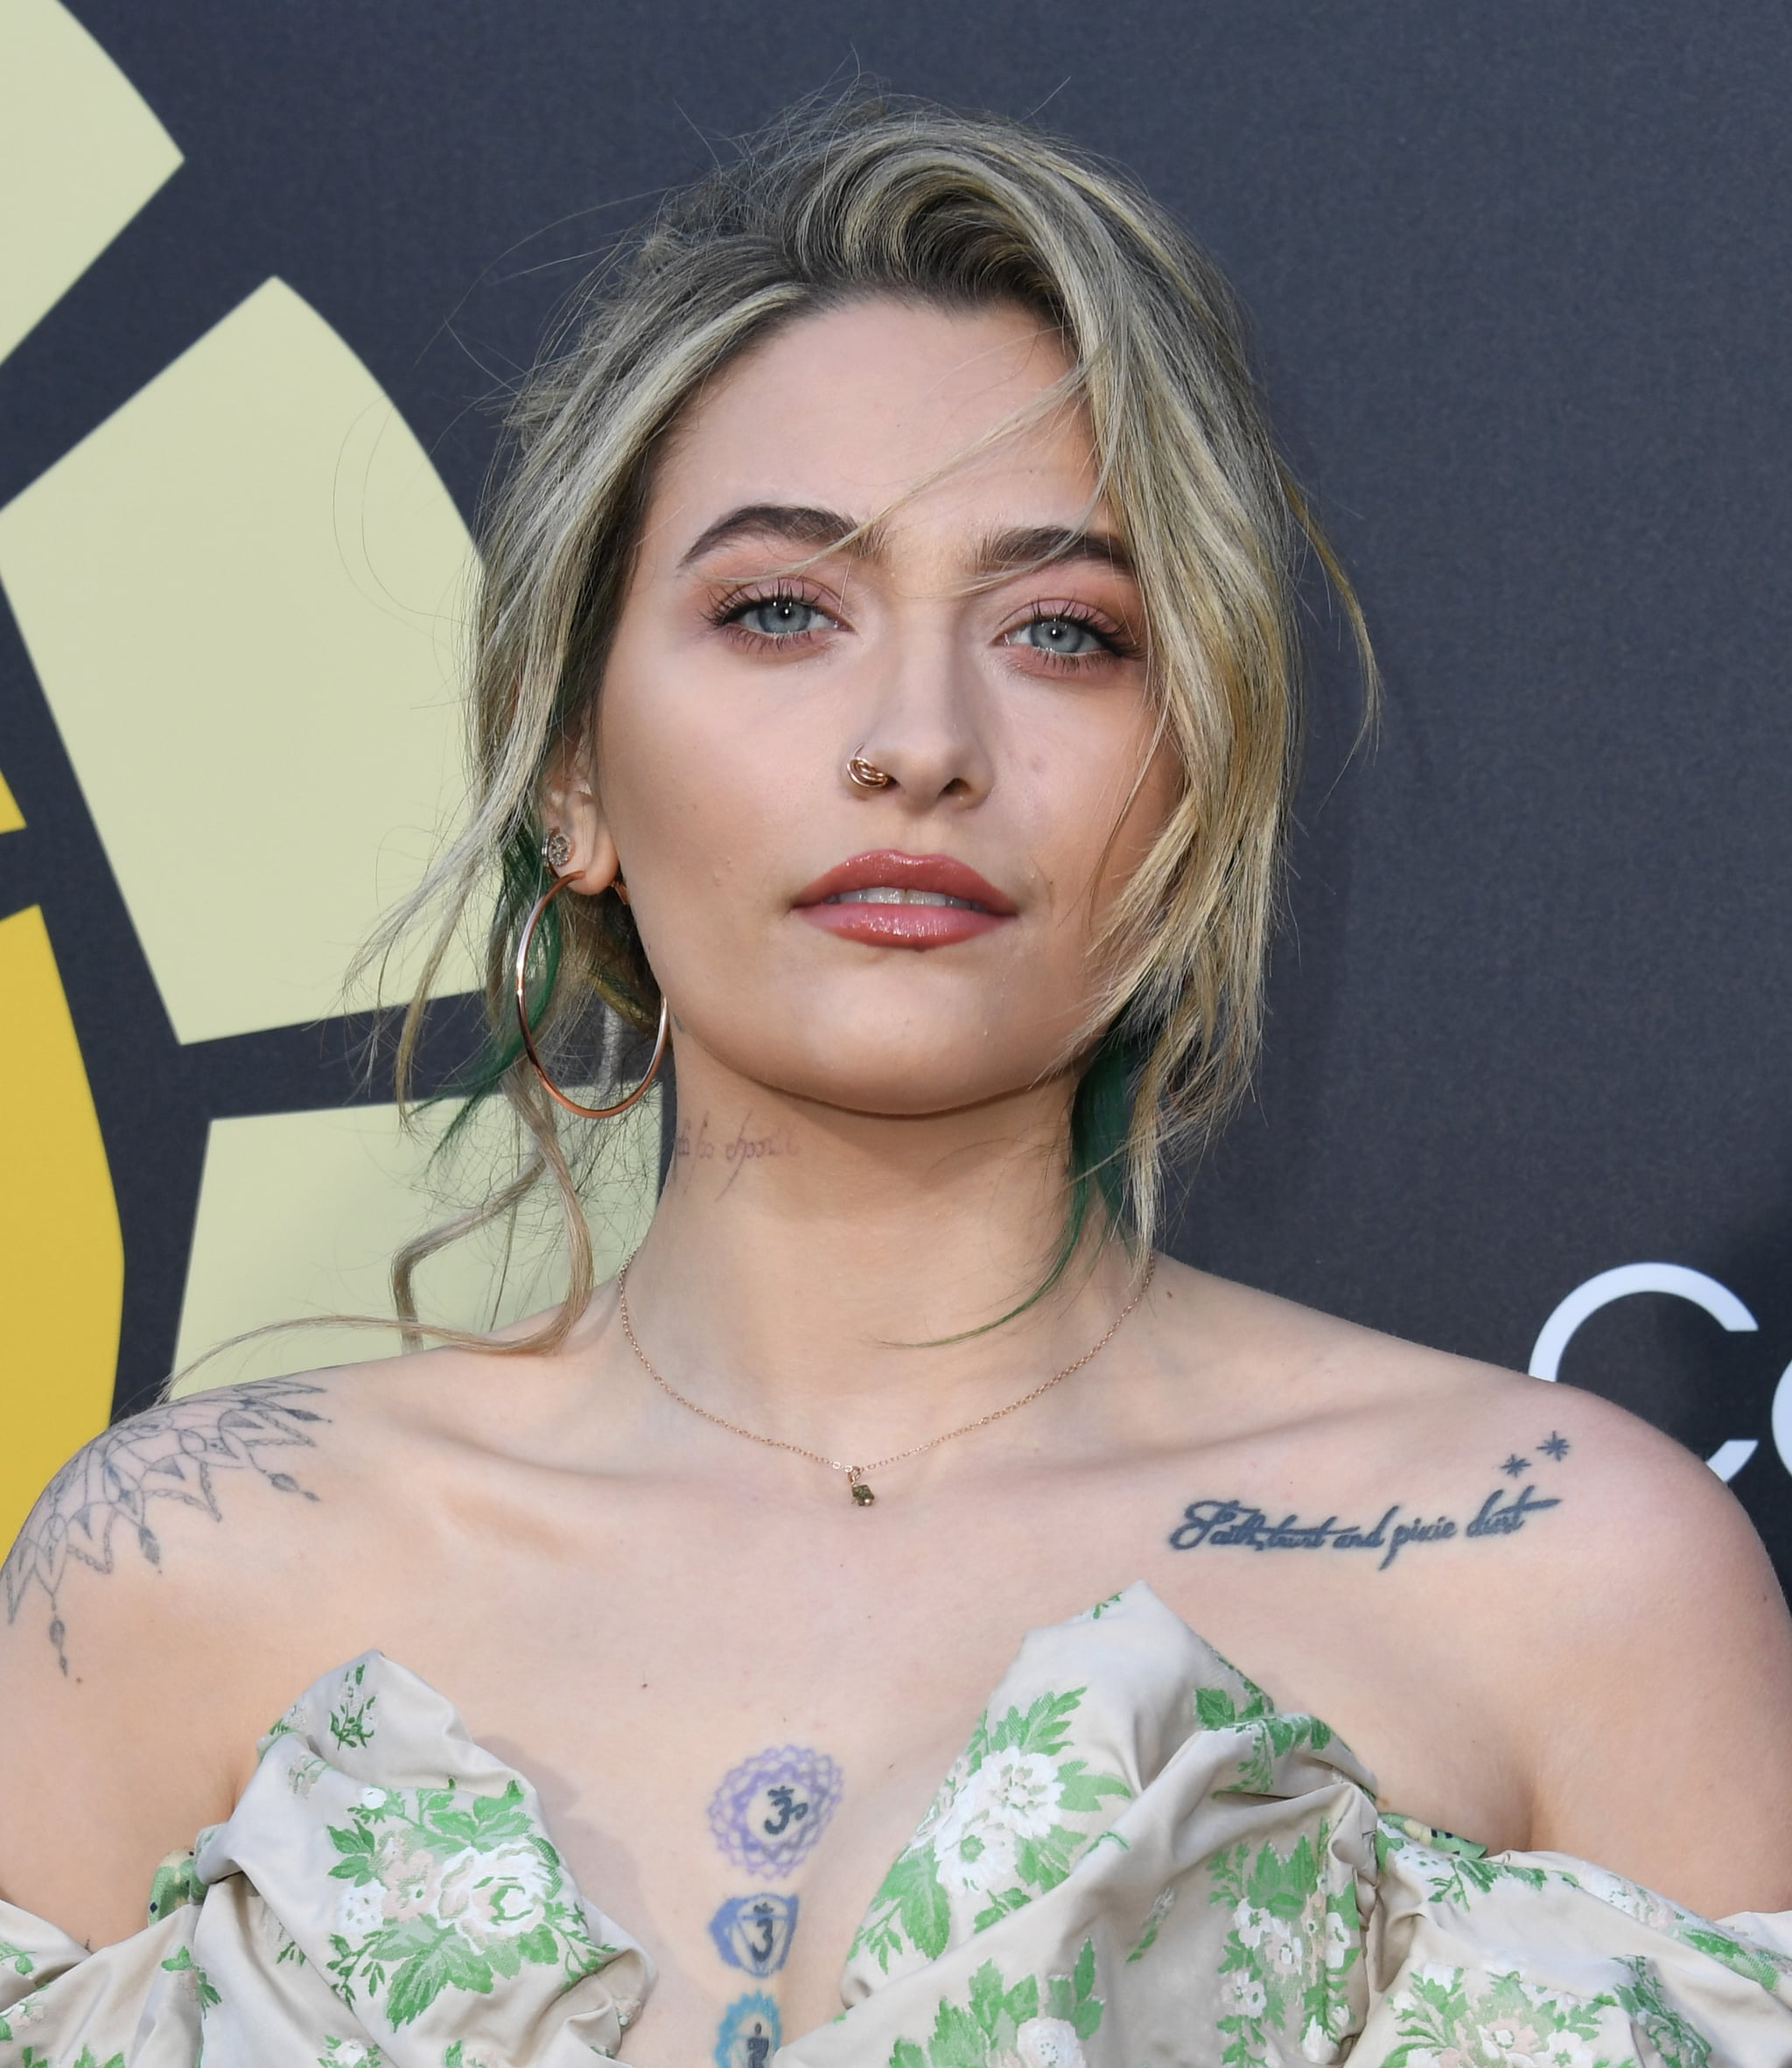 UNIVERSAL CITY, CALIFORNIA - JUNE 26:  Paris Jackson arrives at CTAOP's Night Out 2021: Fast And Furious at Universal Studios Backlot on June 26, 2021 in Universal City, California. (Photo by Jon Kopaloff/Getty Images)